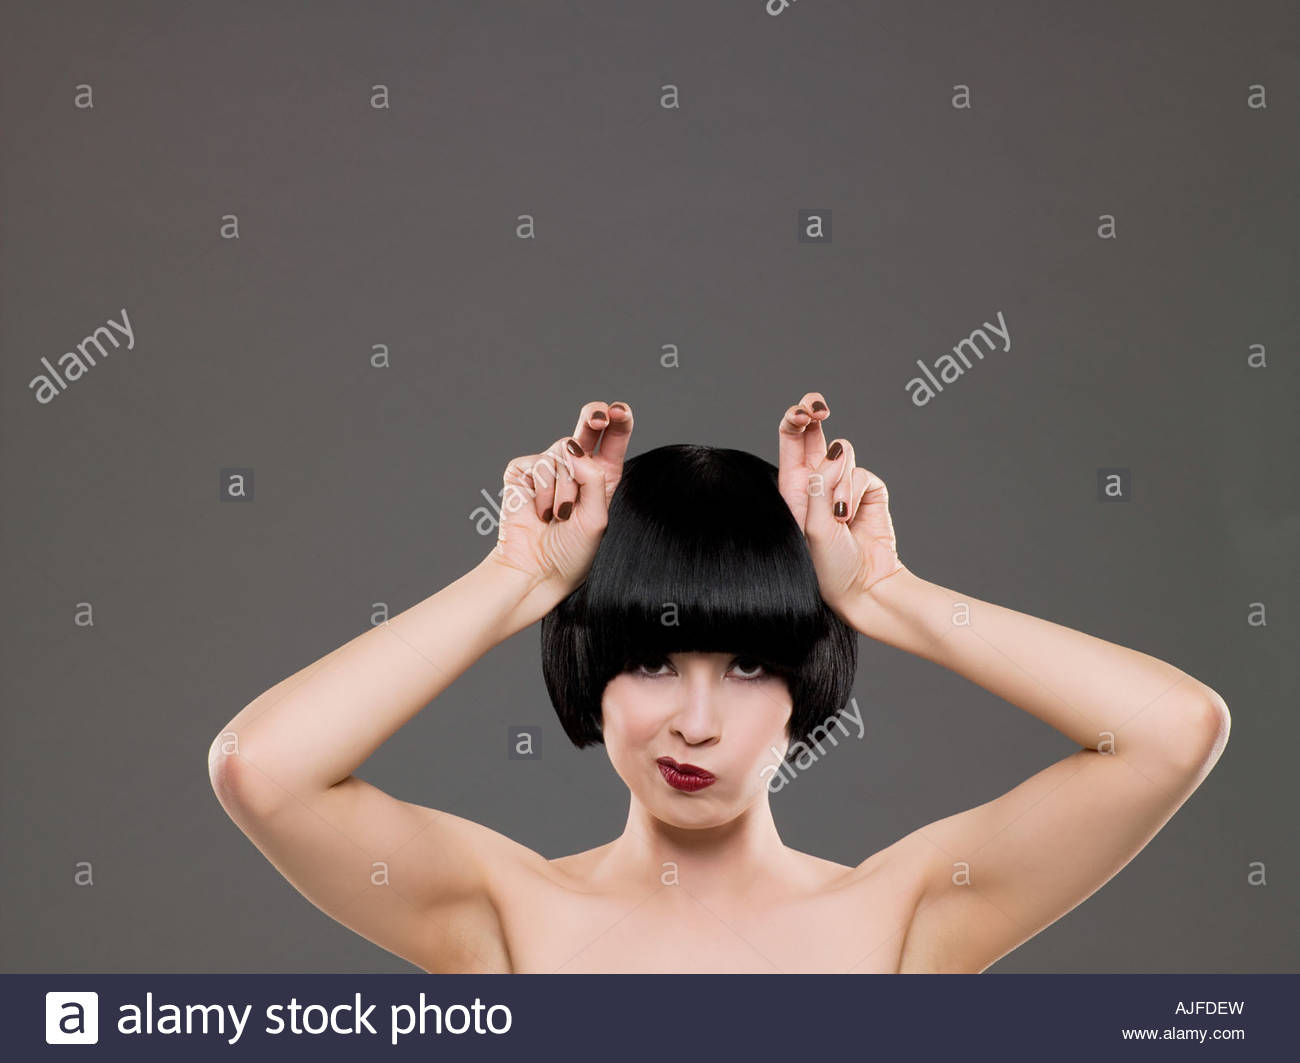 Woman grimacing and making hand gestures - Stock Image